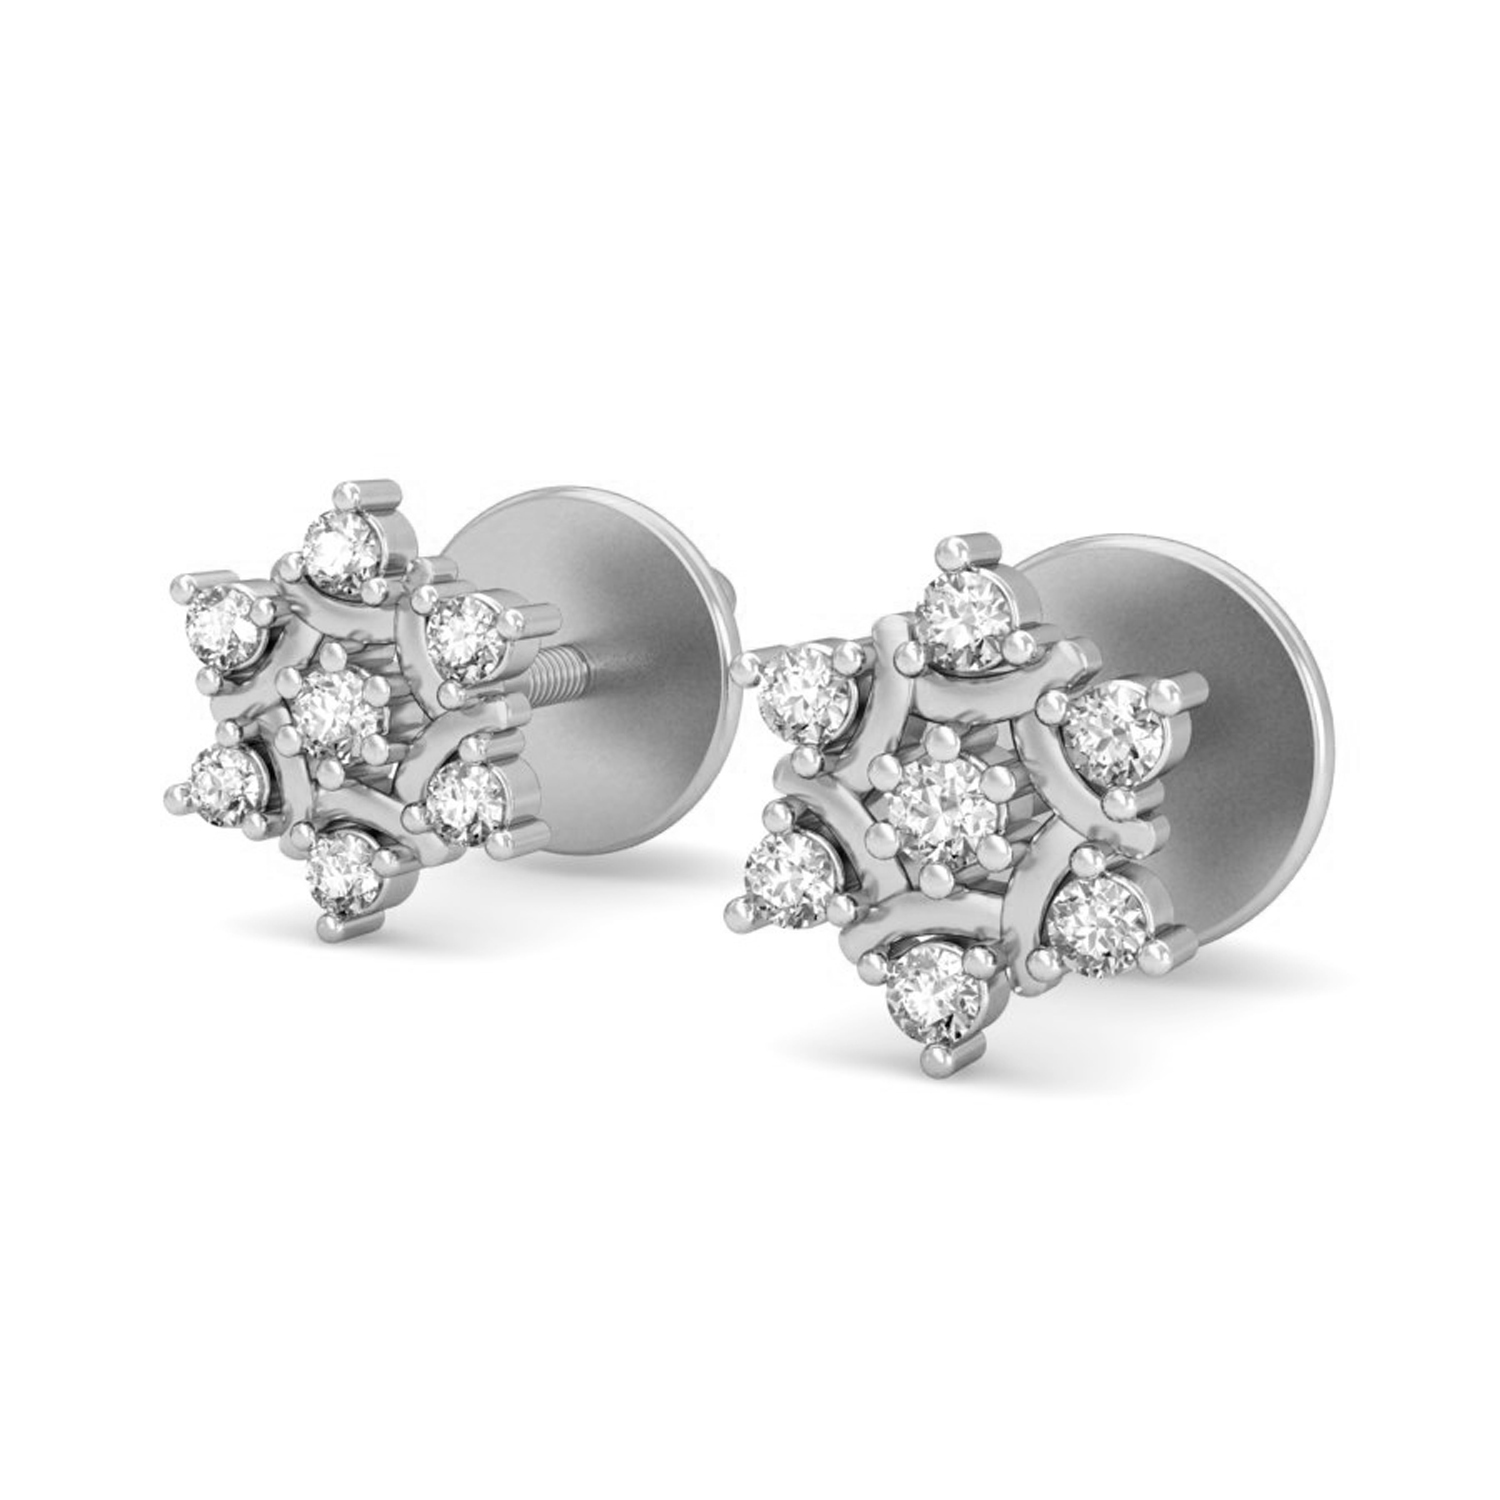 Diamond Studs 0 15 Ct Natural Certified Solid Gold Beautiful For Her